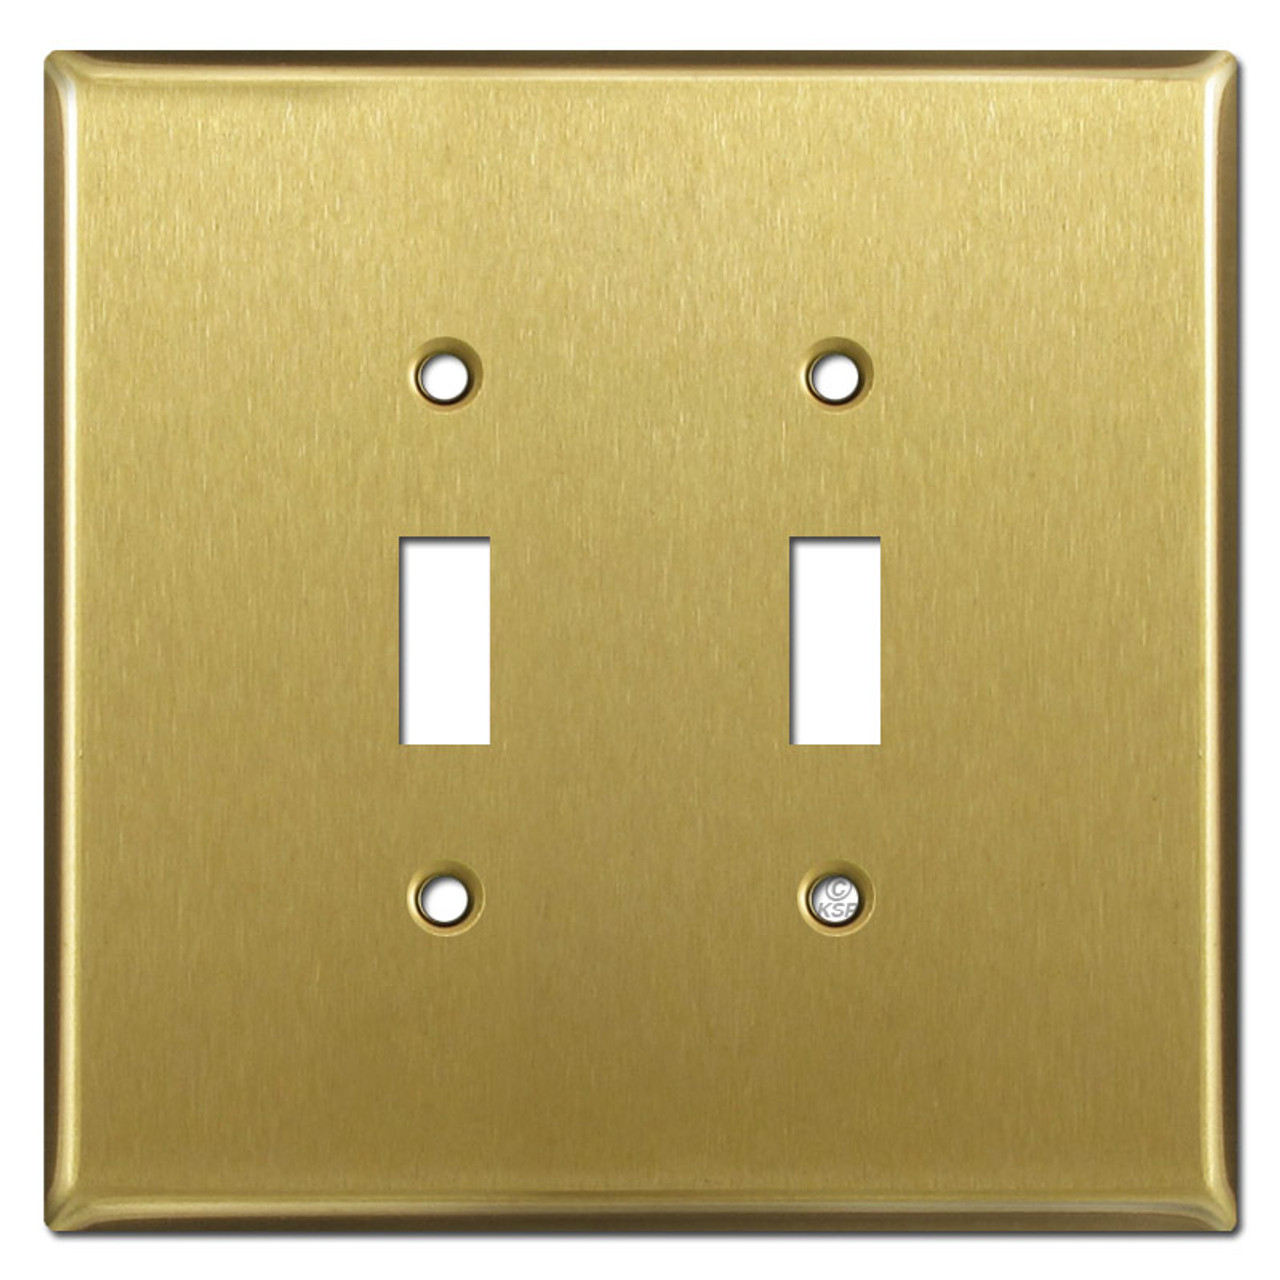 Oversized 2 Toggle Light Switch Covers Satin Brass